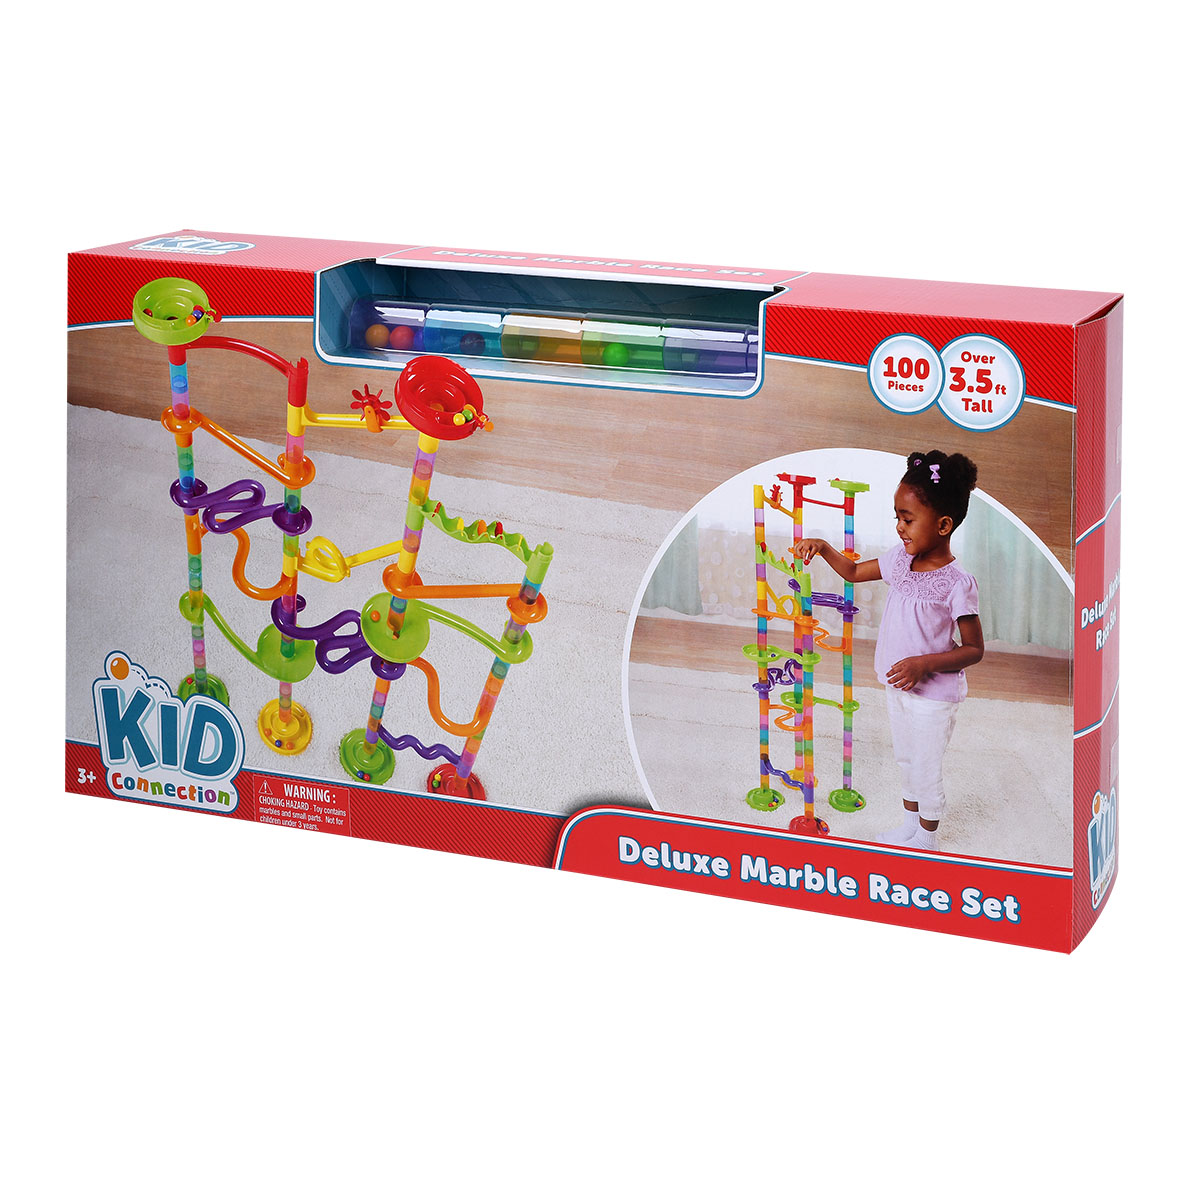 Kid Connection Marble Race